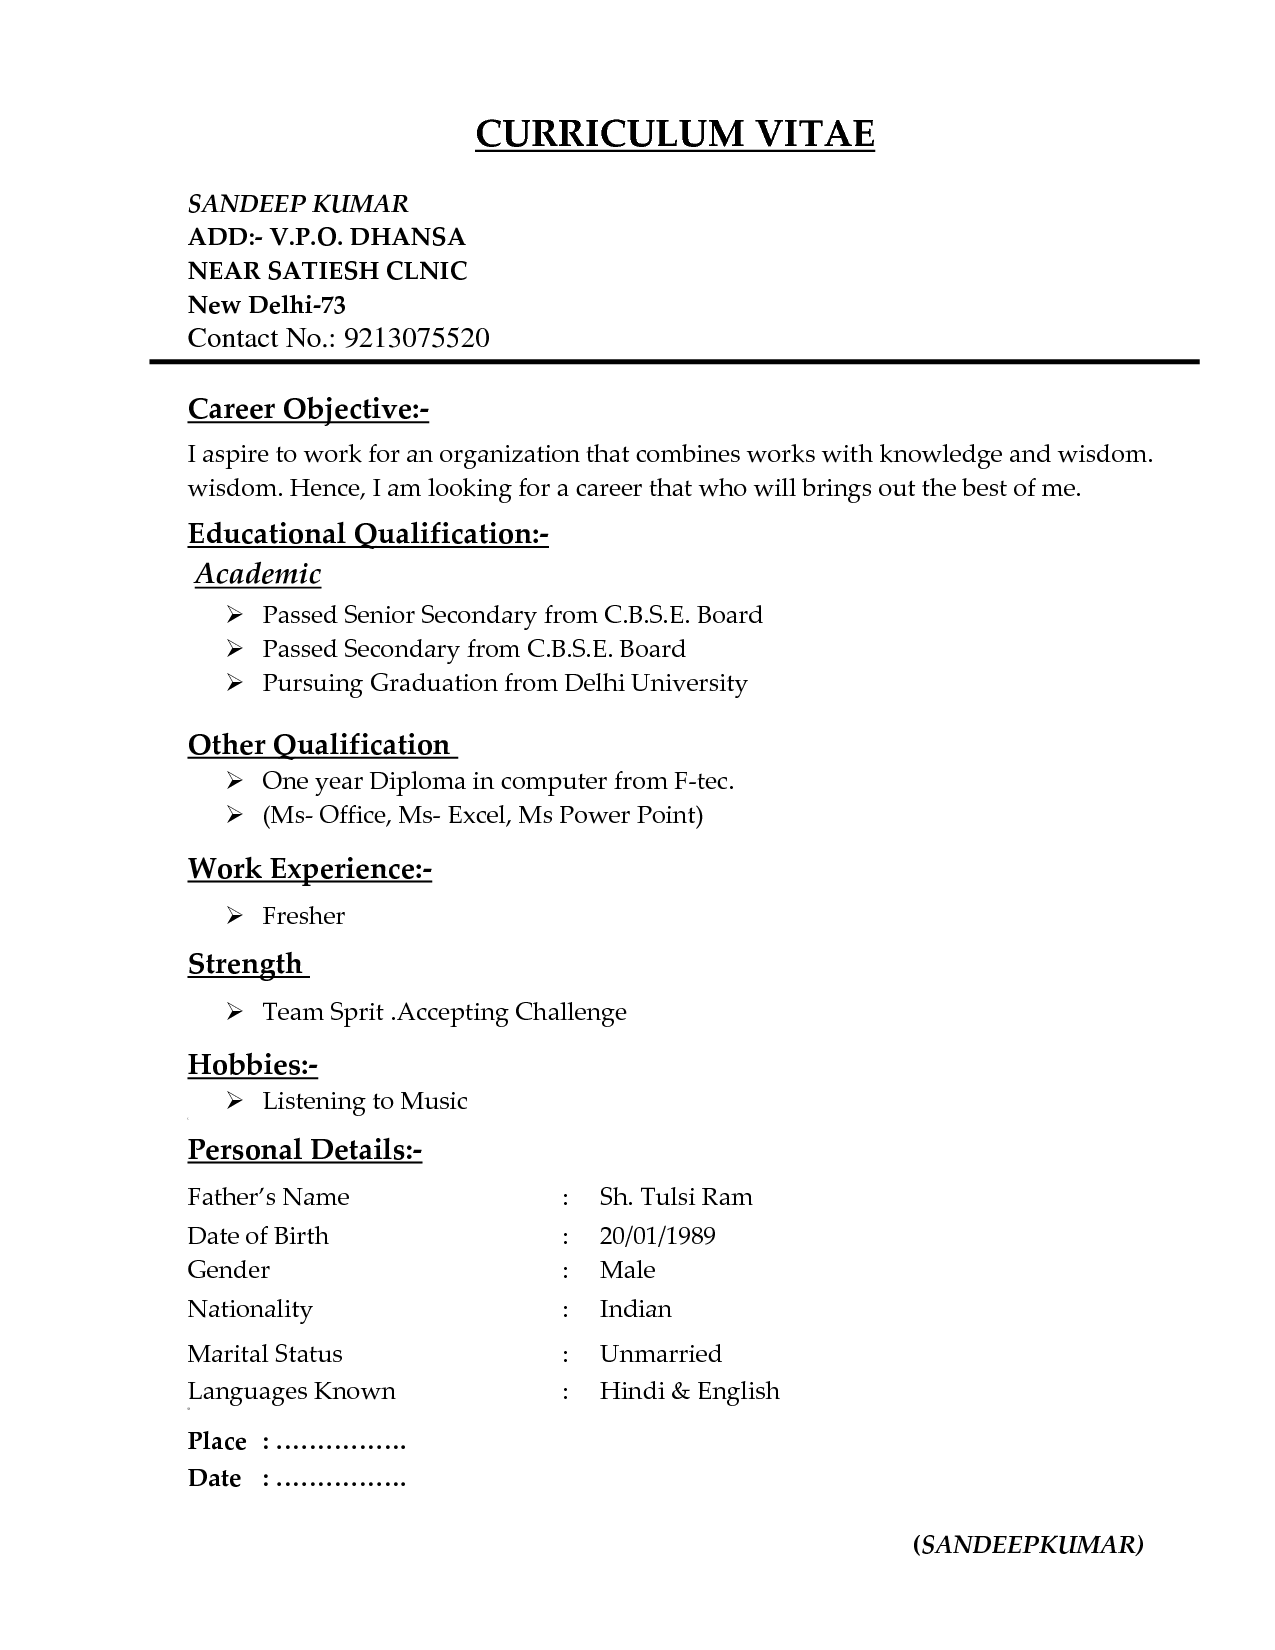 Resume Format Types in 2018 | Resume Format | Pinterest | Resume format